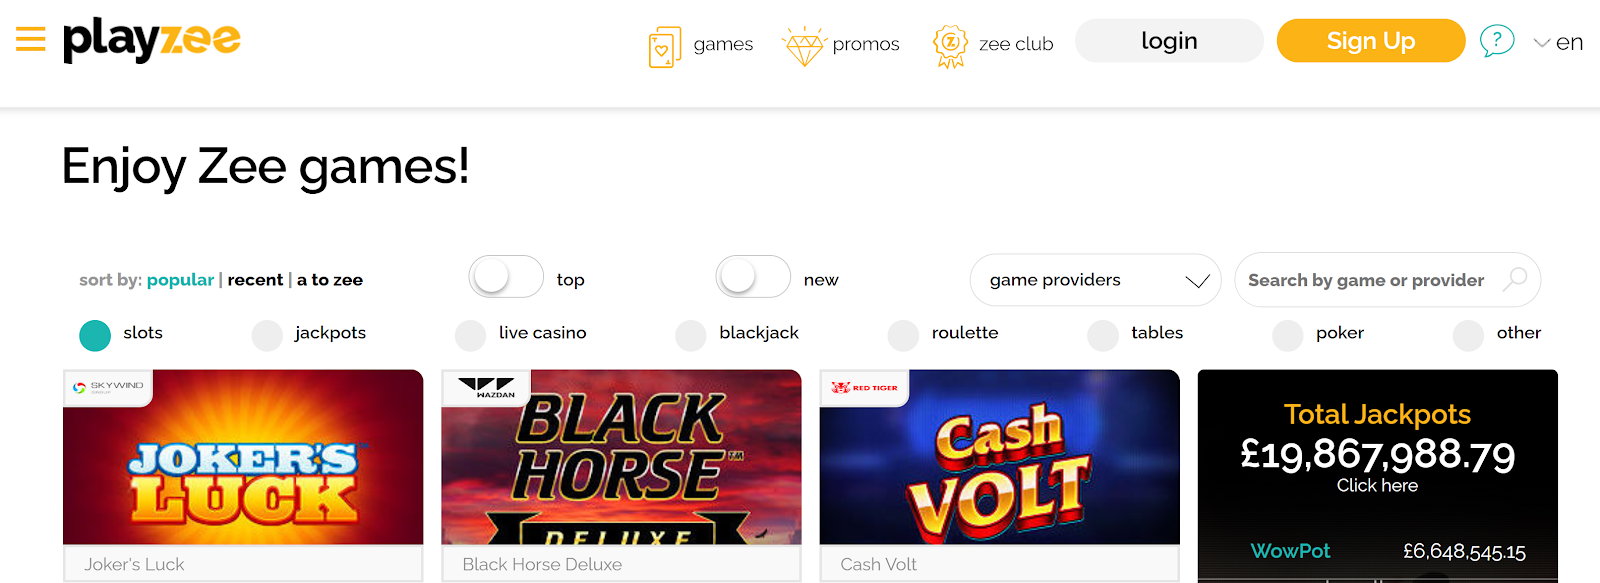 Playzee Casino is a top-rated slot bonus site